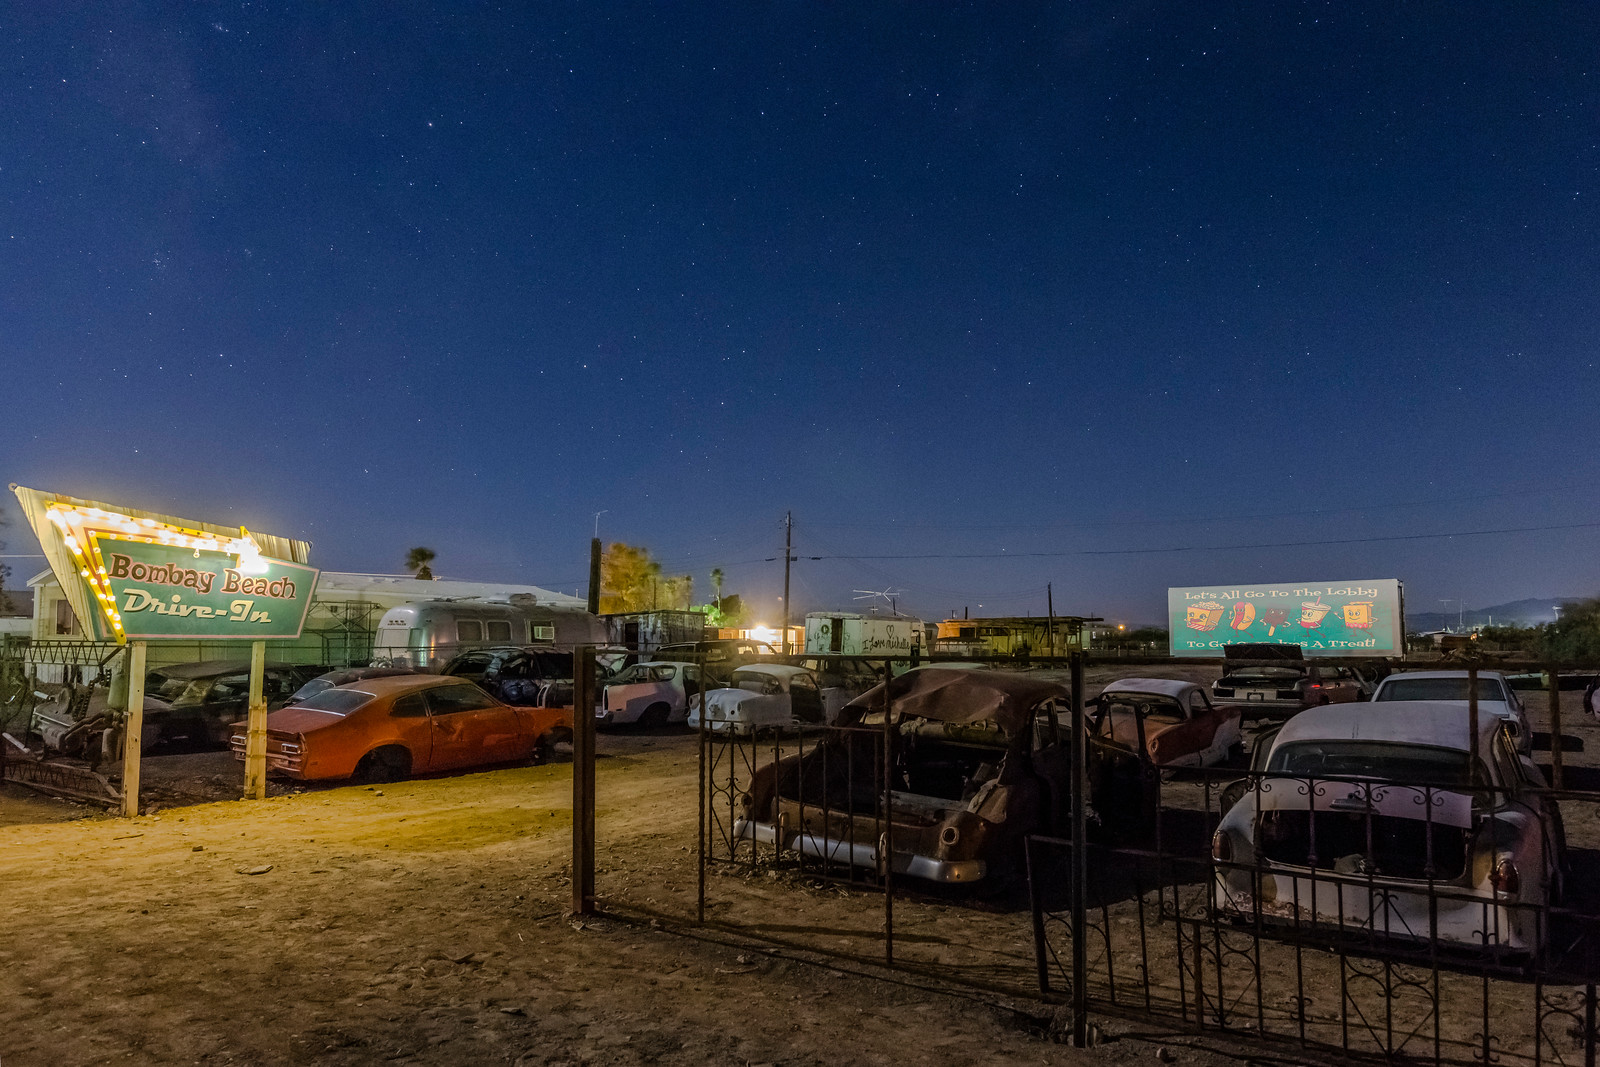 Movies Under the Stars at the Bombay Beach Drive-In Theatre